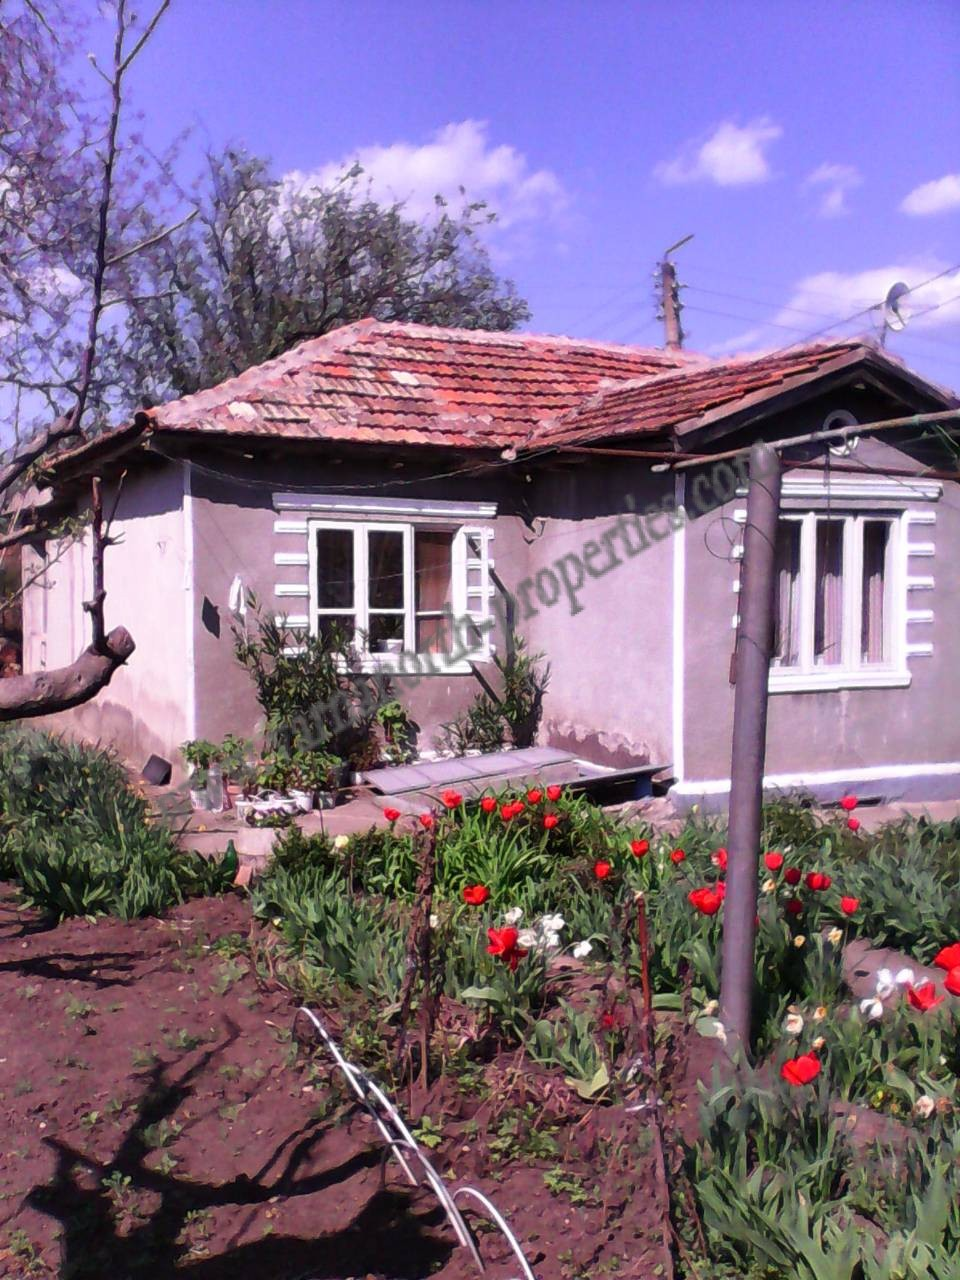 Cheap house in Bulgaria by the sea